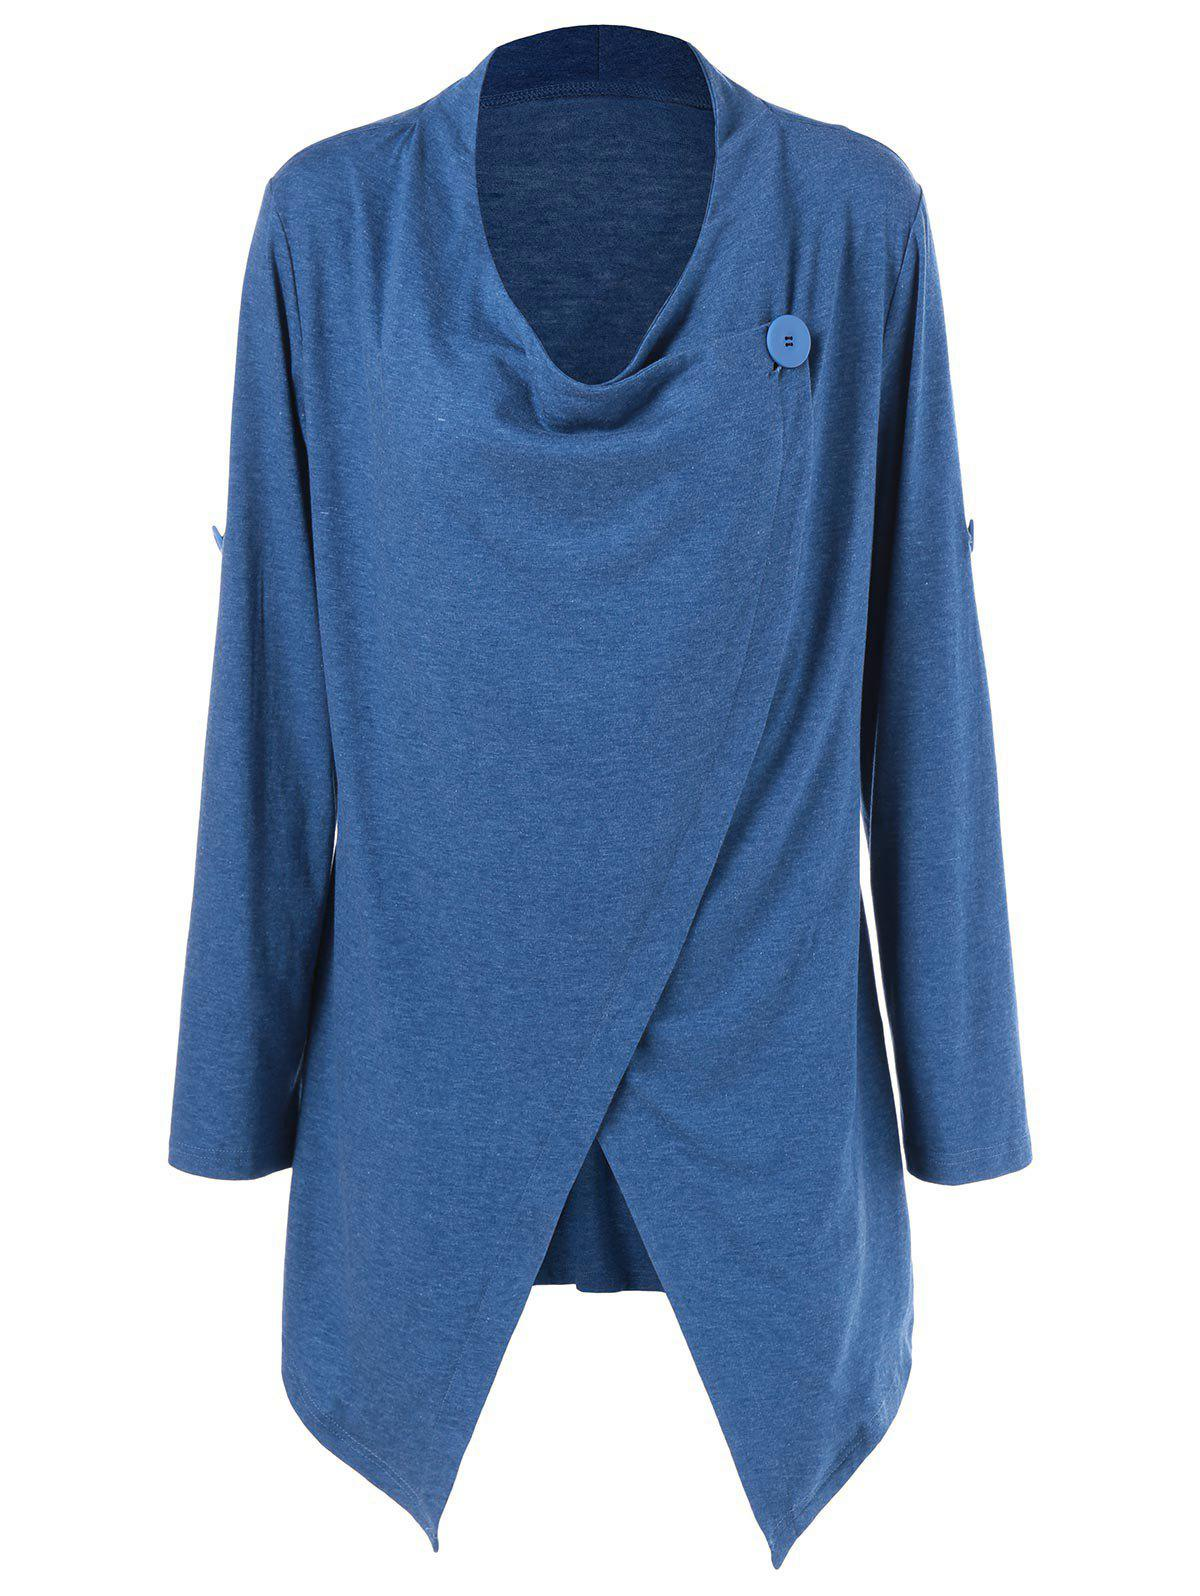 Outfit Overlap Adjustable Sleeve T-Shirt